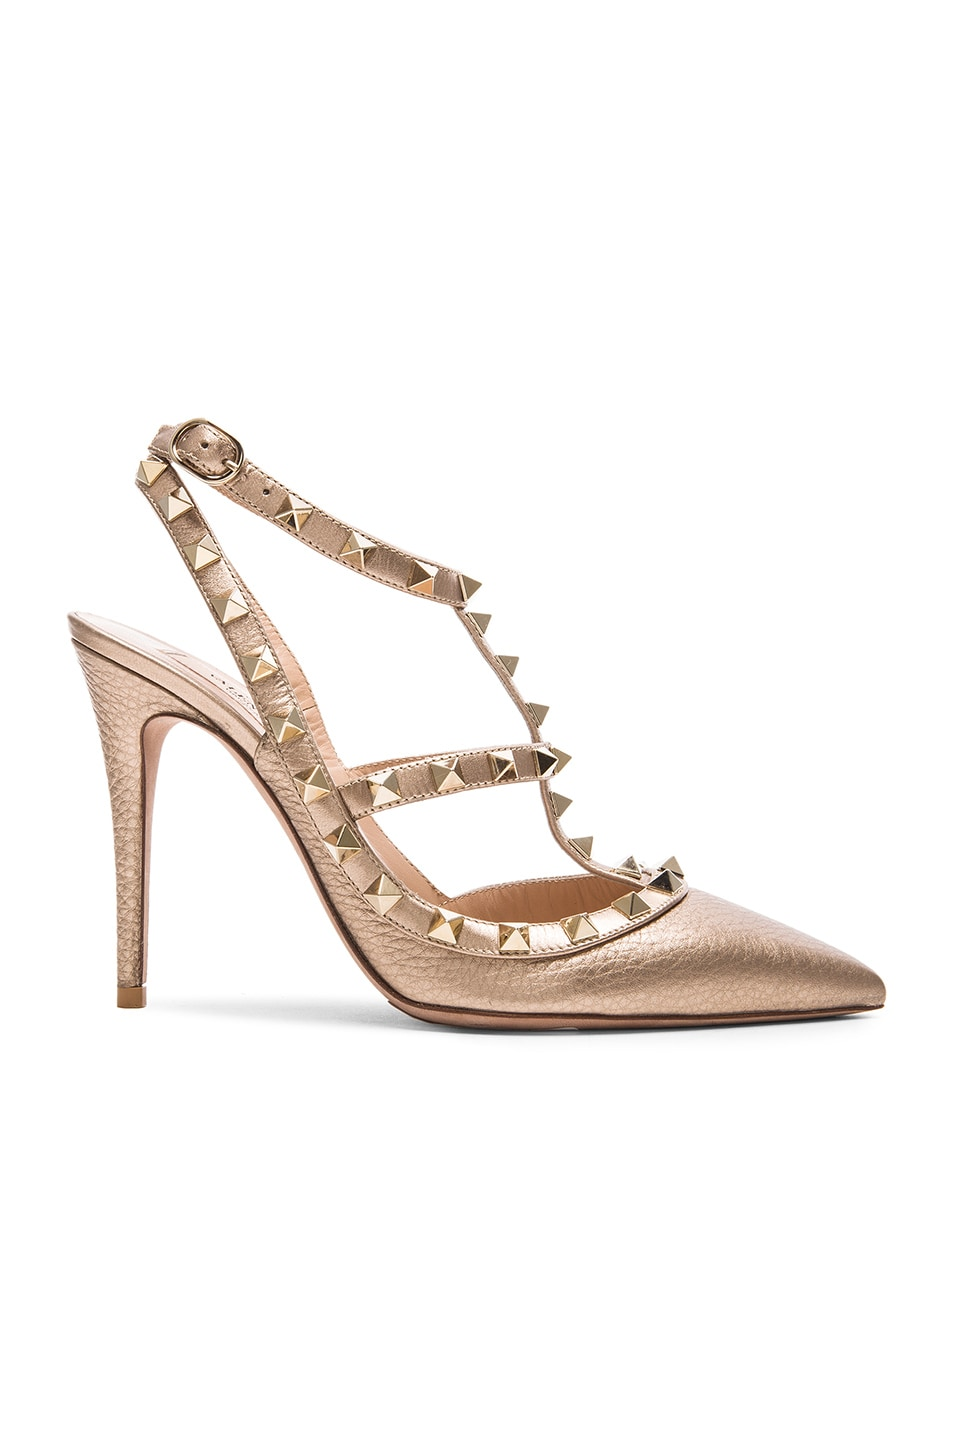 Rockstud Slingback 100 Sandals in Gold Metallic Leather Valentino aN8ShlrjK